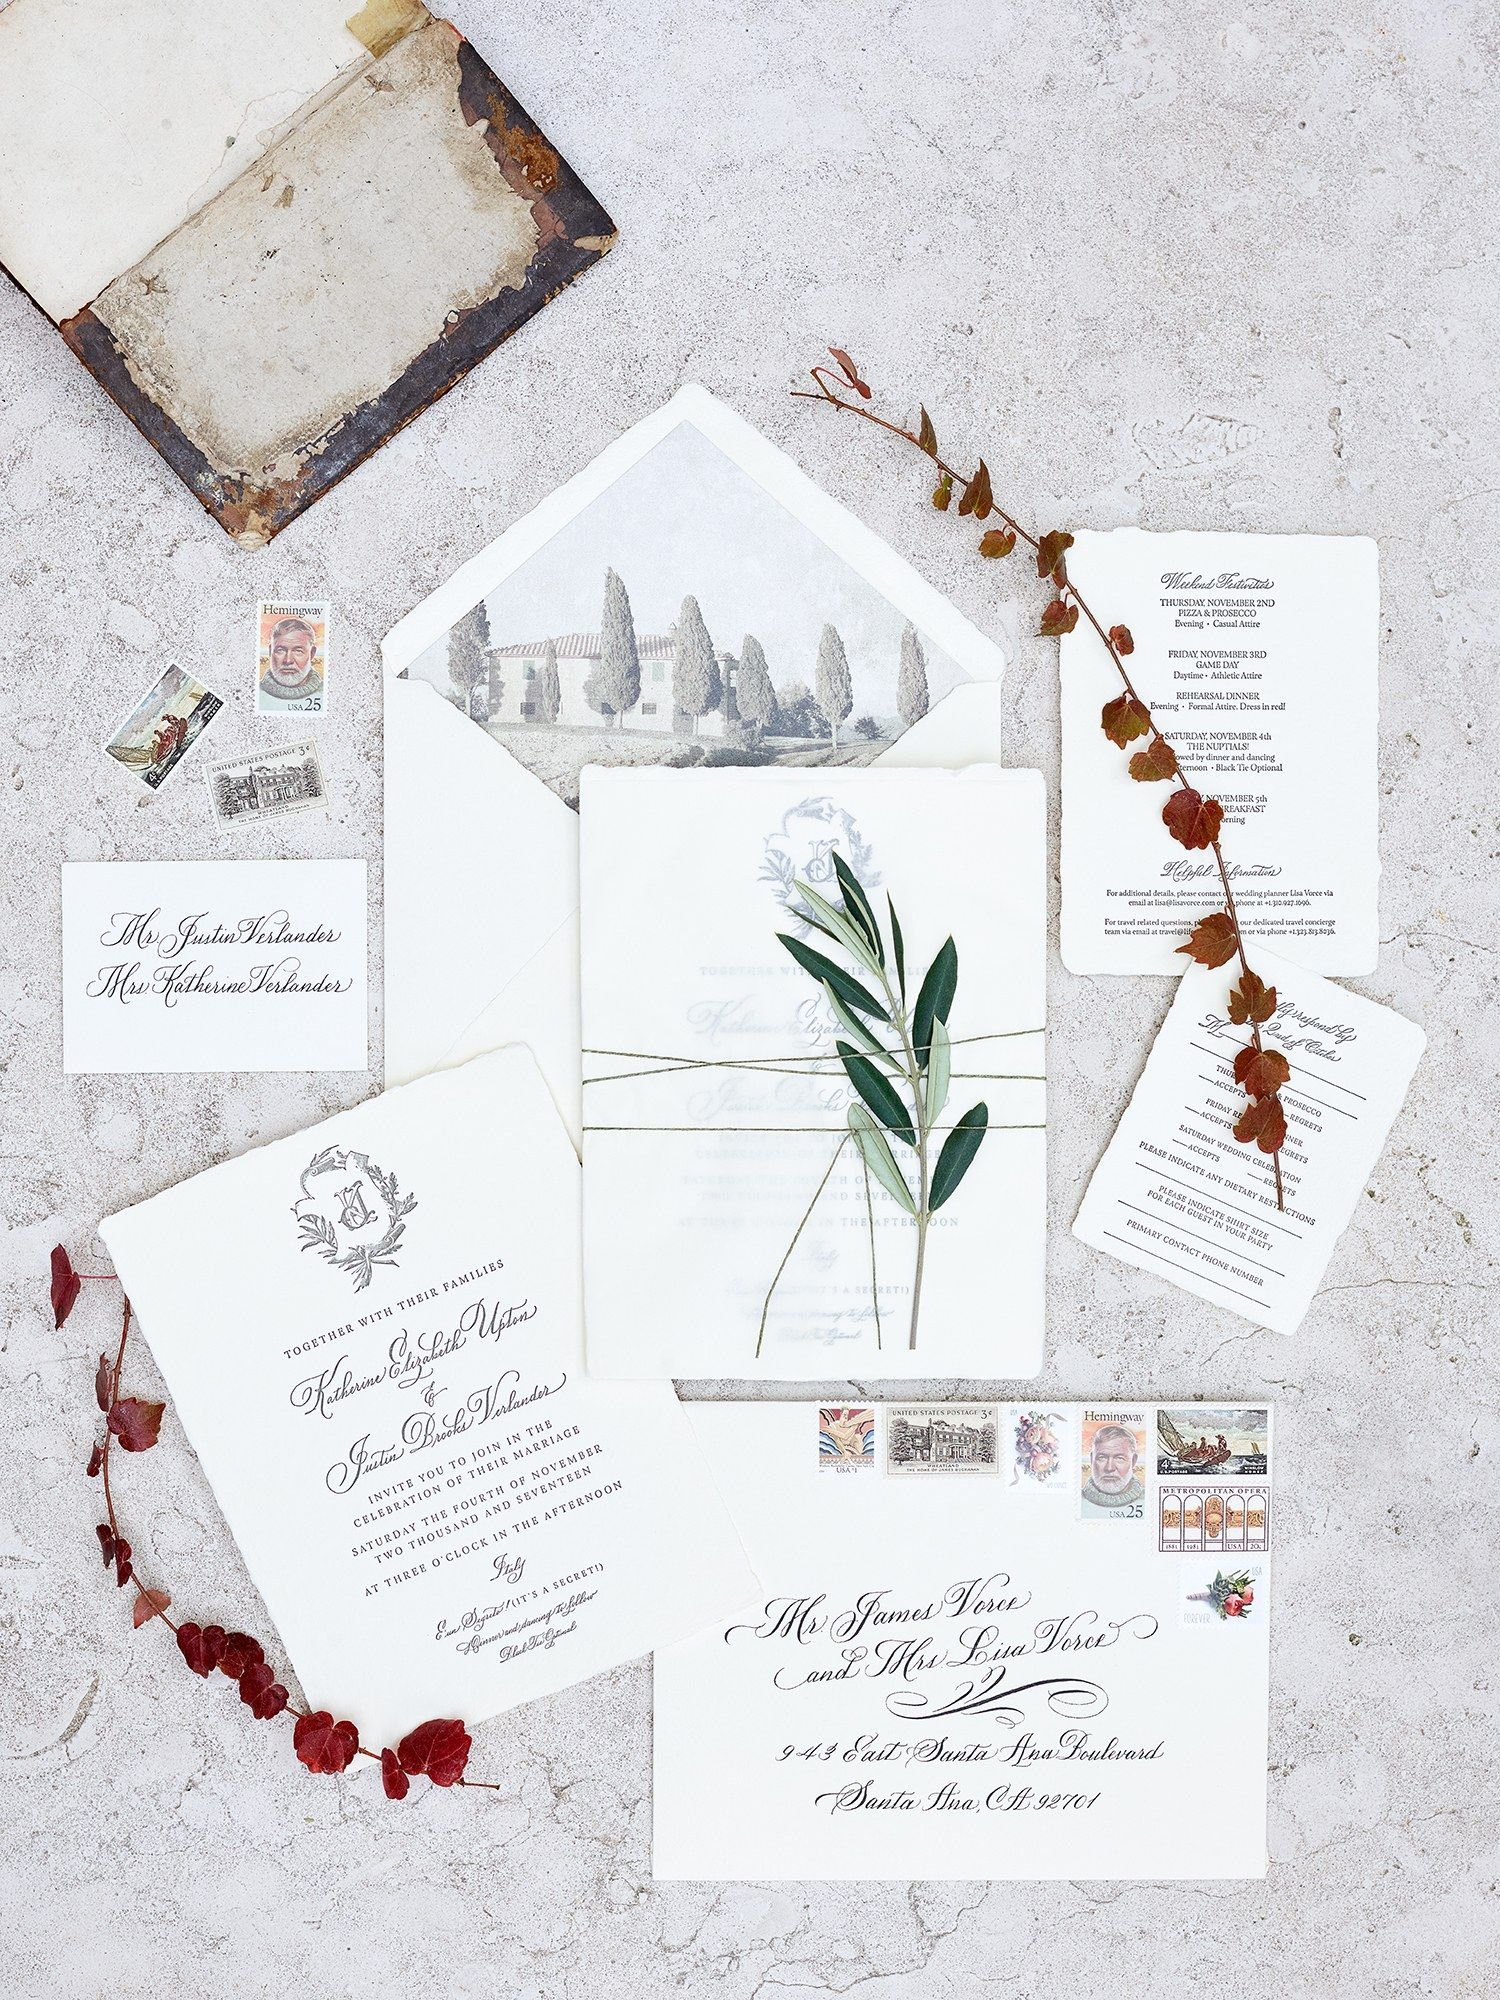 Italian Romance Inside Kate Upton And Justin Verlander's Whirlwind Wedding Weekend In Tuscany: Exquisite Tuscan Wedding Invitations At Websimilar.org